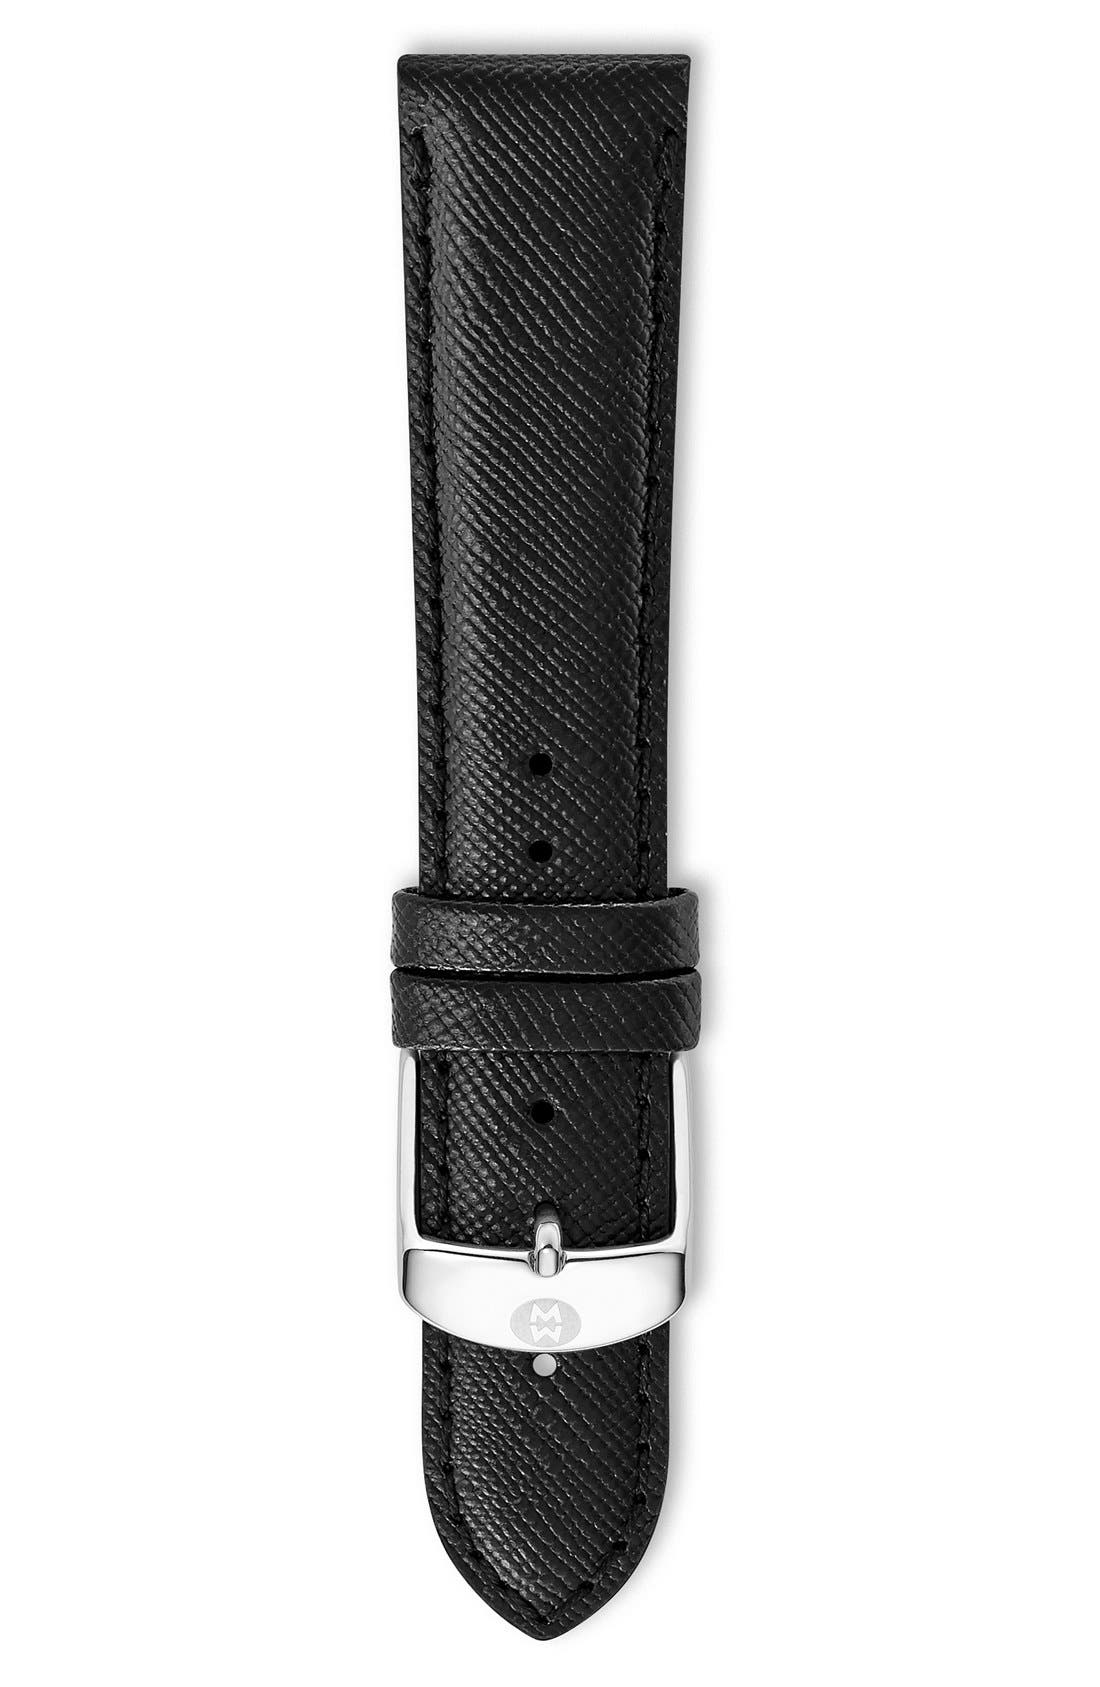 Alternate Image 1 Selected - MICHELE 20mm Saffiano Leather Watch Strap